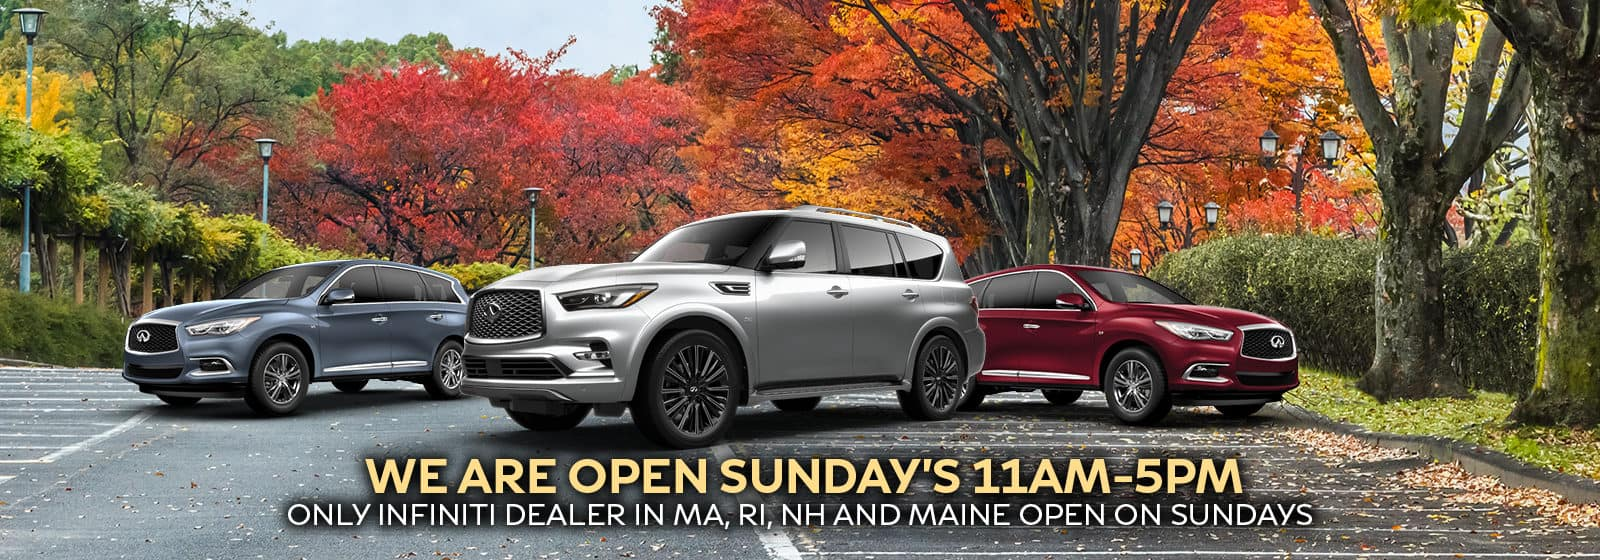 Open Sundays 11AM-5PM